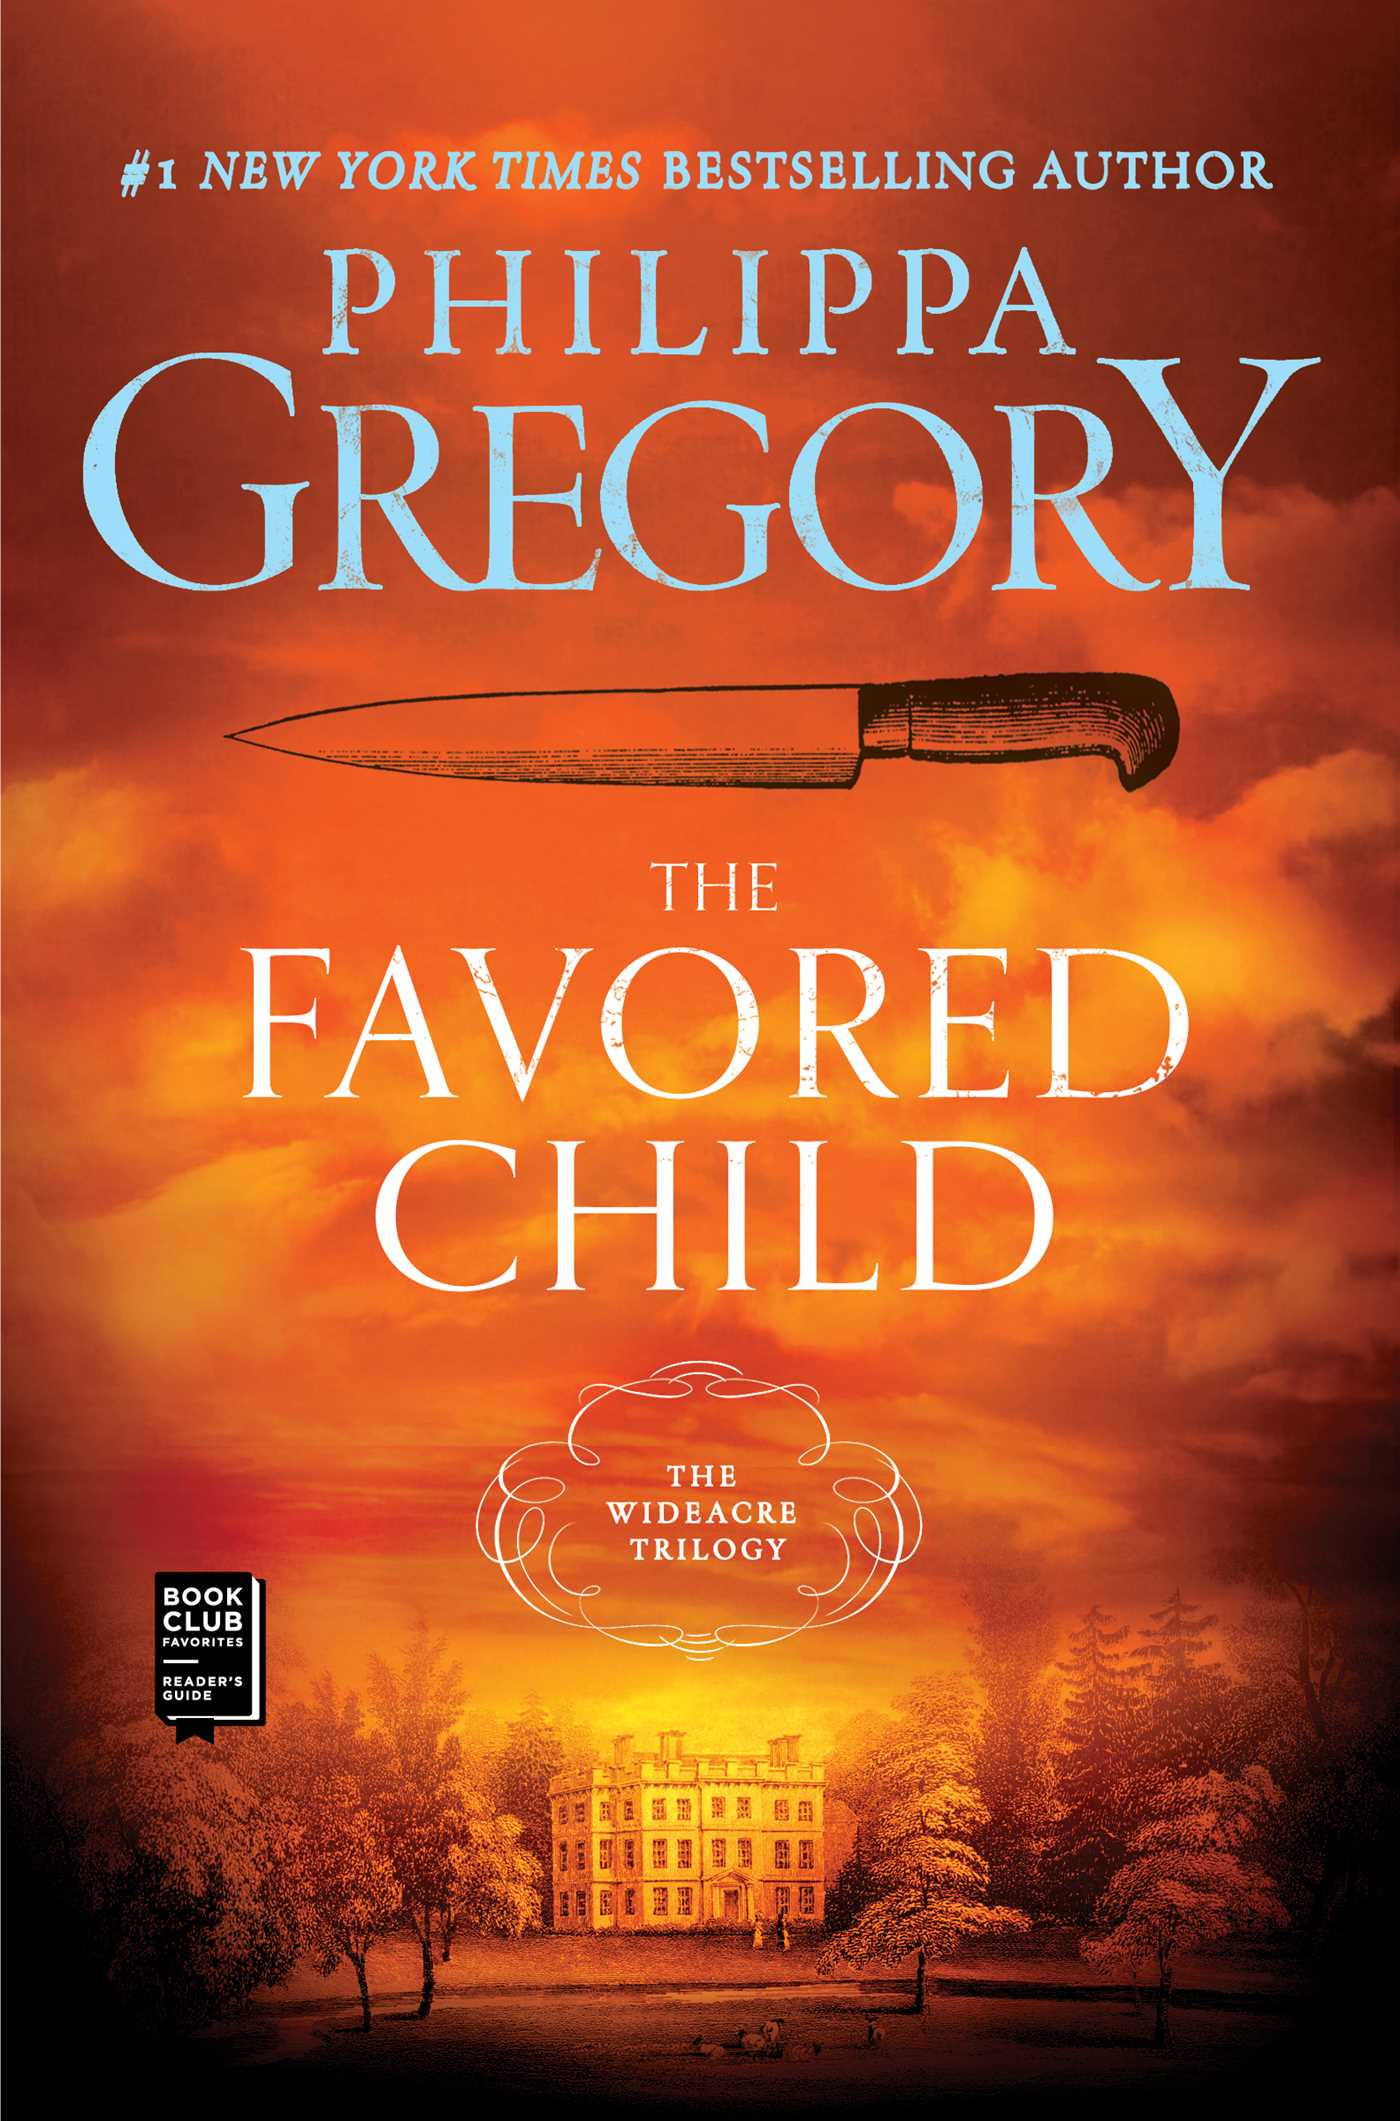 The favored child 9781439103401 hr